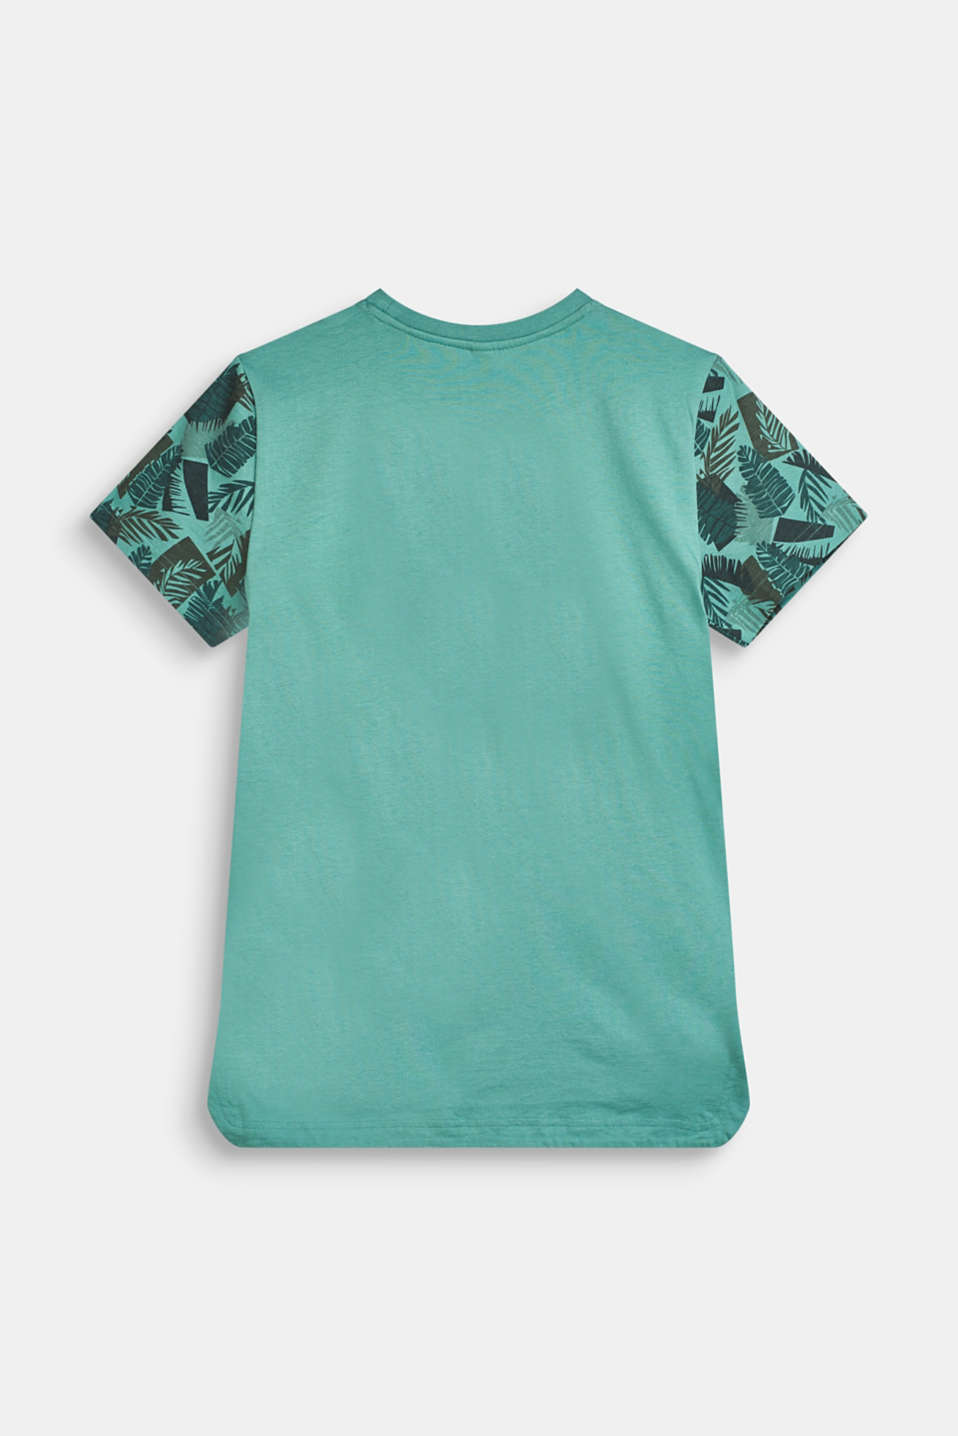 T-shirt with tropical print, 100% cotton, LCSOFT GREEN, detail image number 1